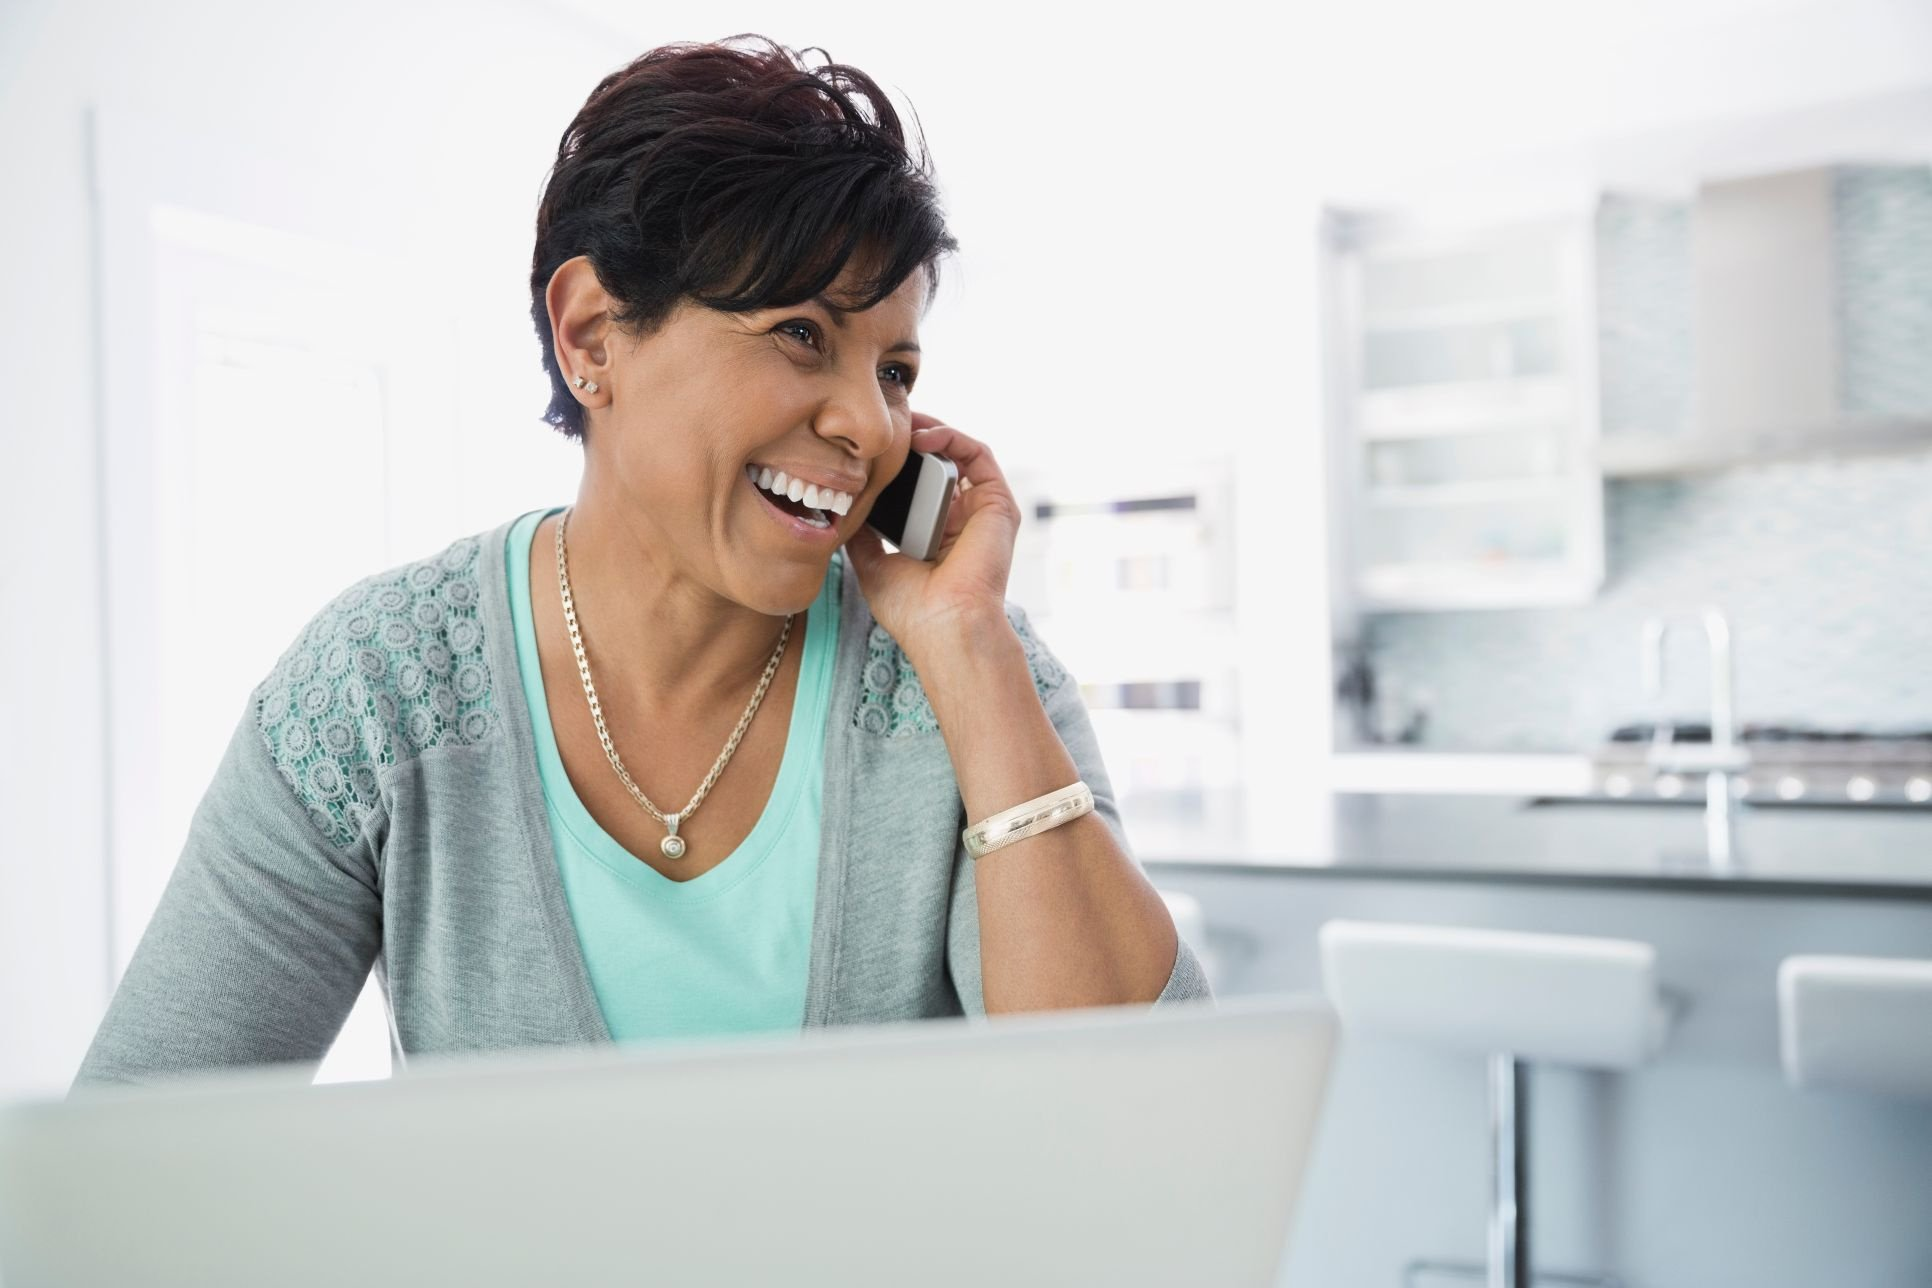 Middle-aged woman using mobile phone at home